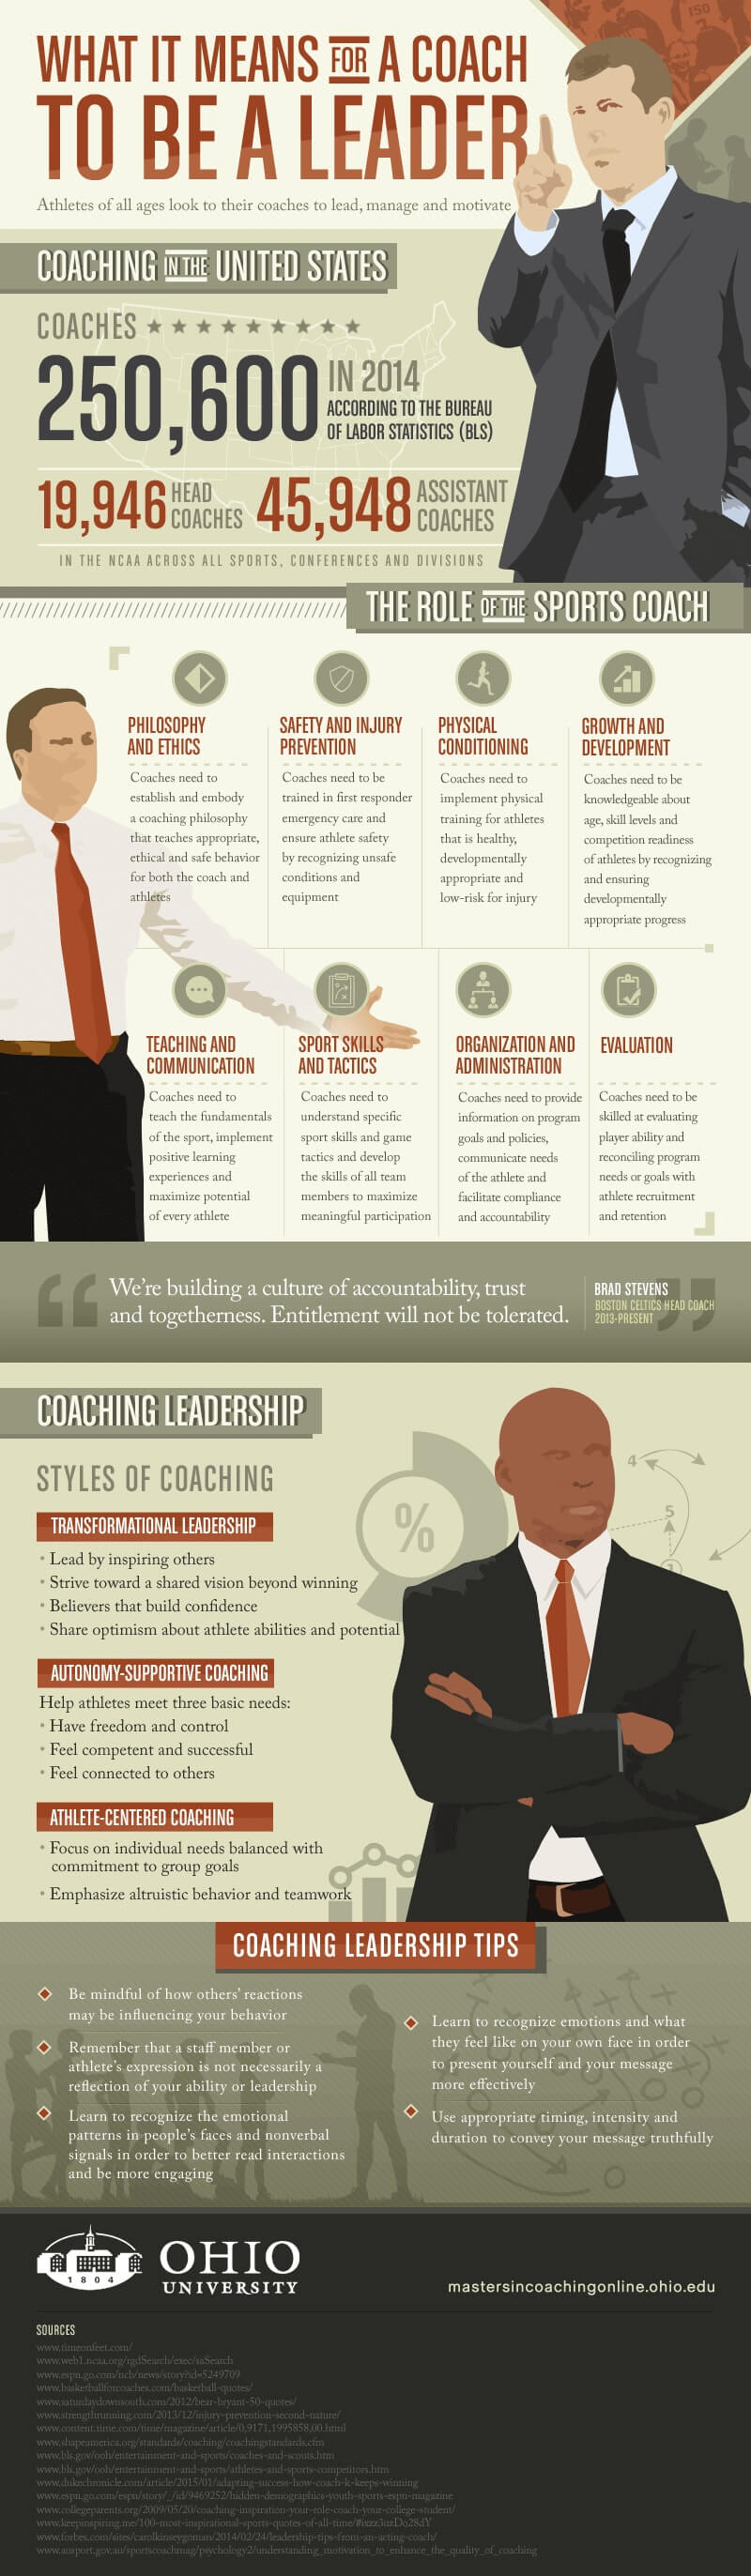 What it means for a coach to be a leader infographic